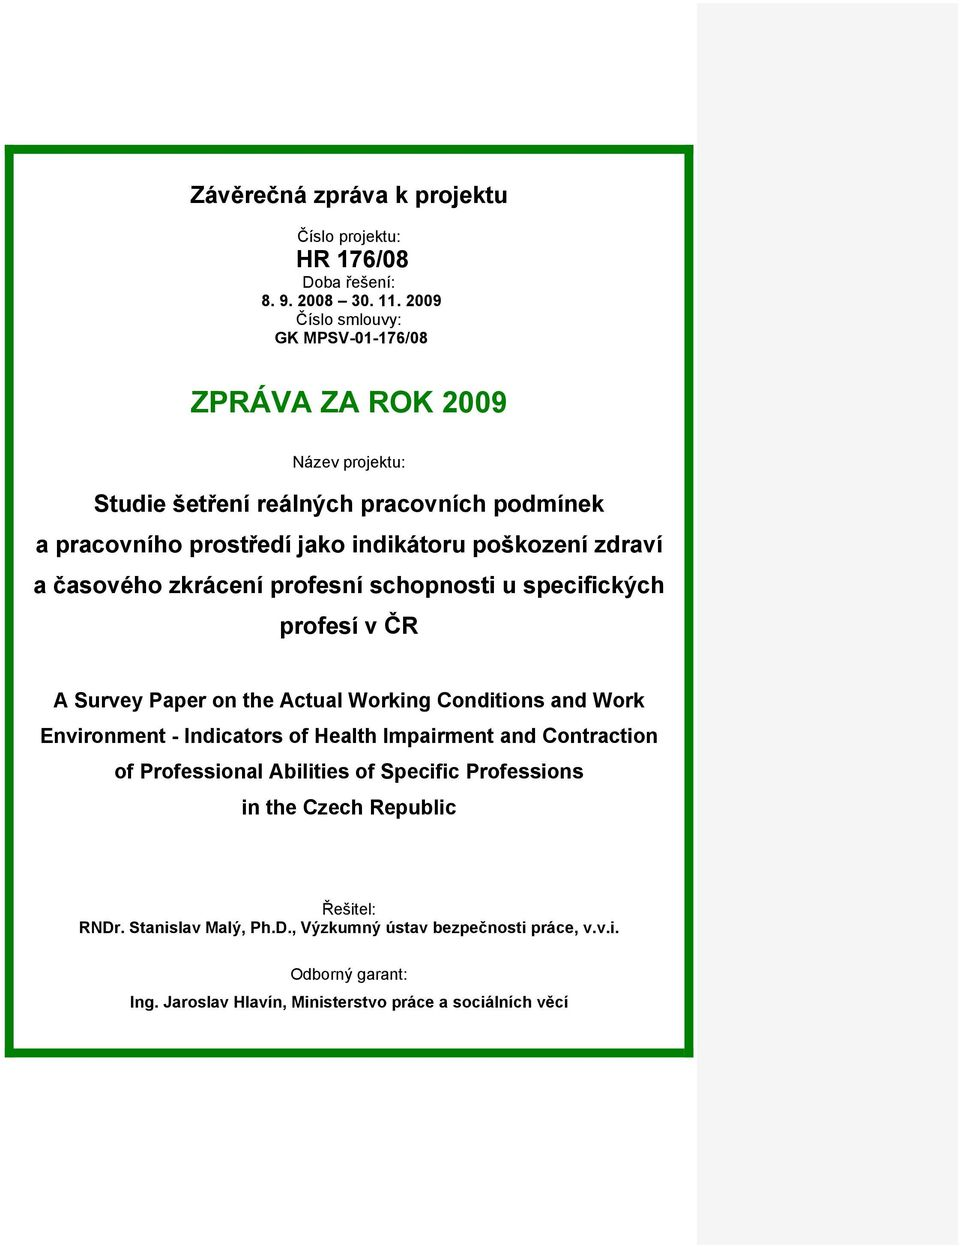 zdraví a časového zkrácení profesní schopnosti u specifických profesí v ČR A Survey Paper on the Actual Working Conditions and Work Environment - Indicators of Health